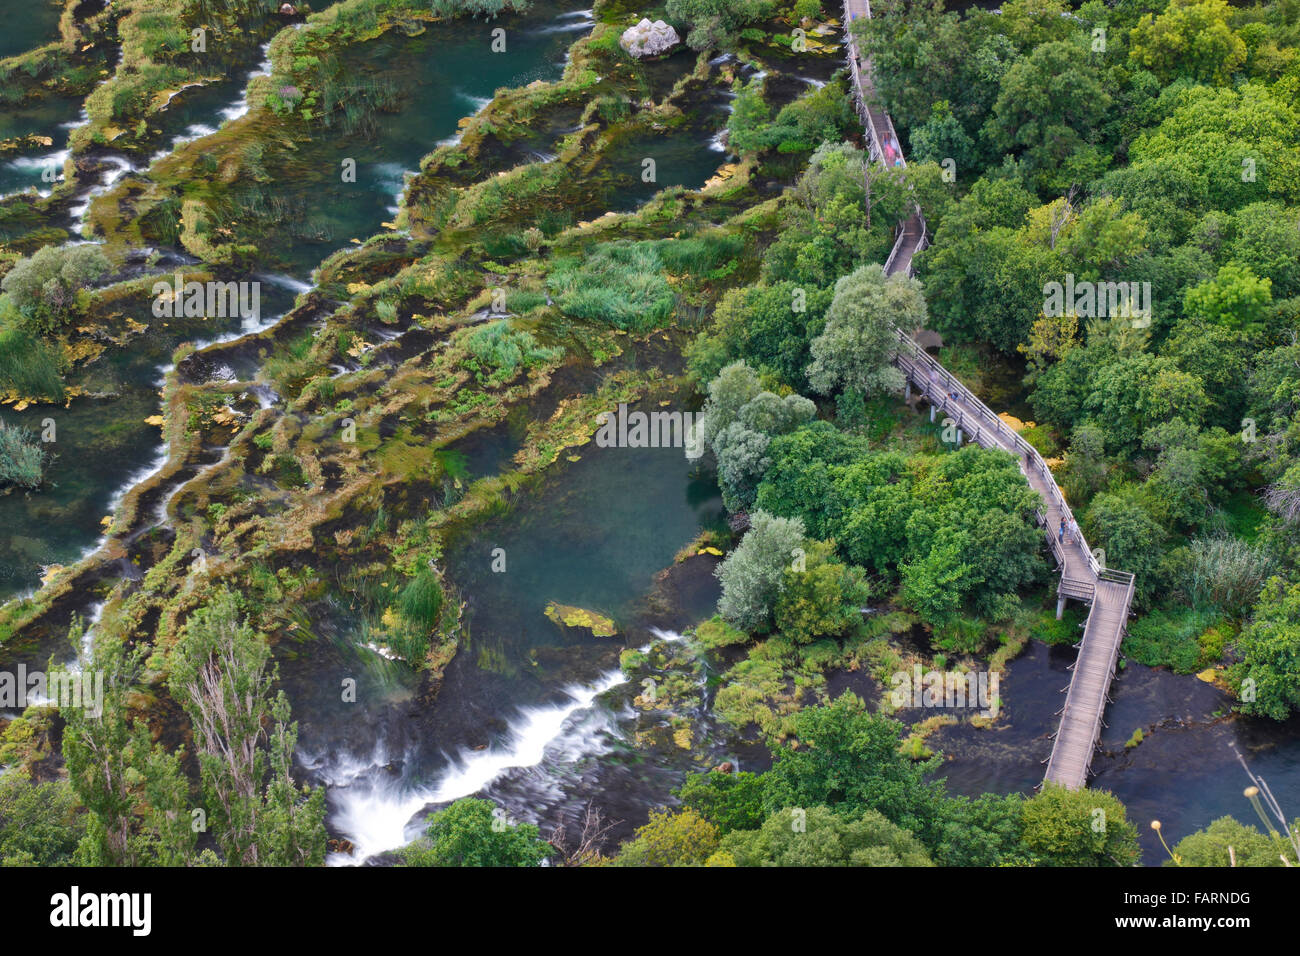 Wooden bridge over river Krka in National park Krka, Croatia - Stock Image